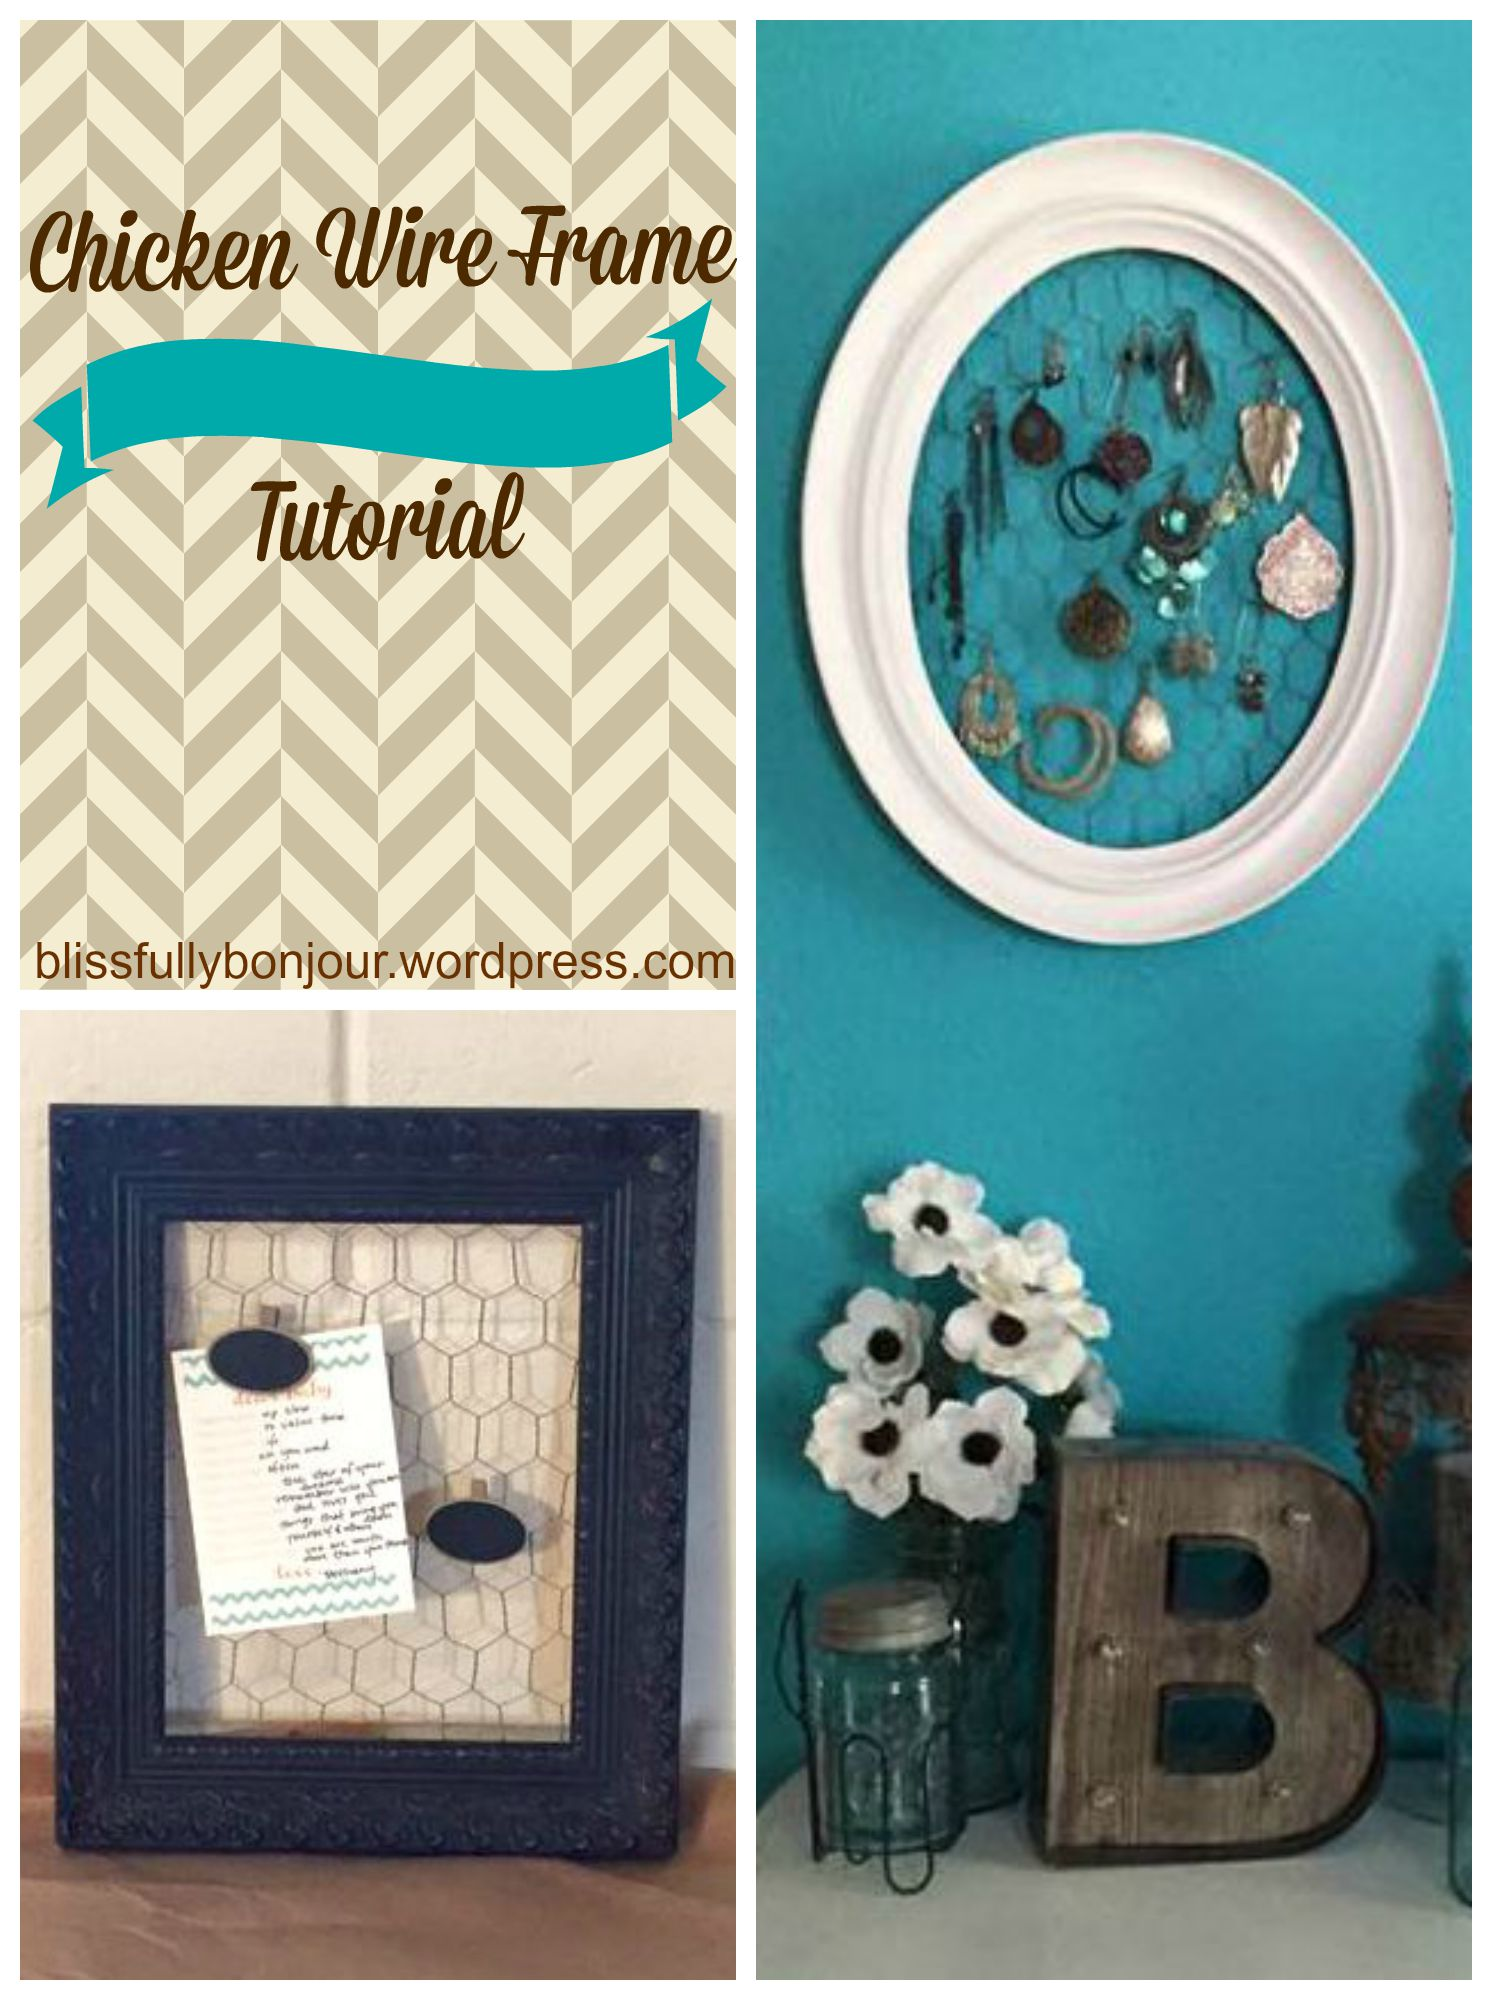 Chicken Wire Frame Tutorial – Blissfully Bonjour